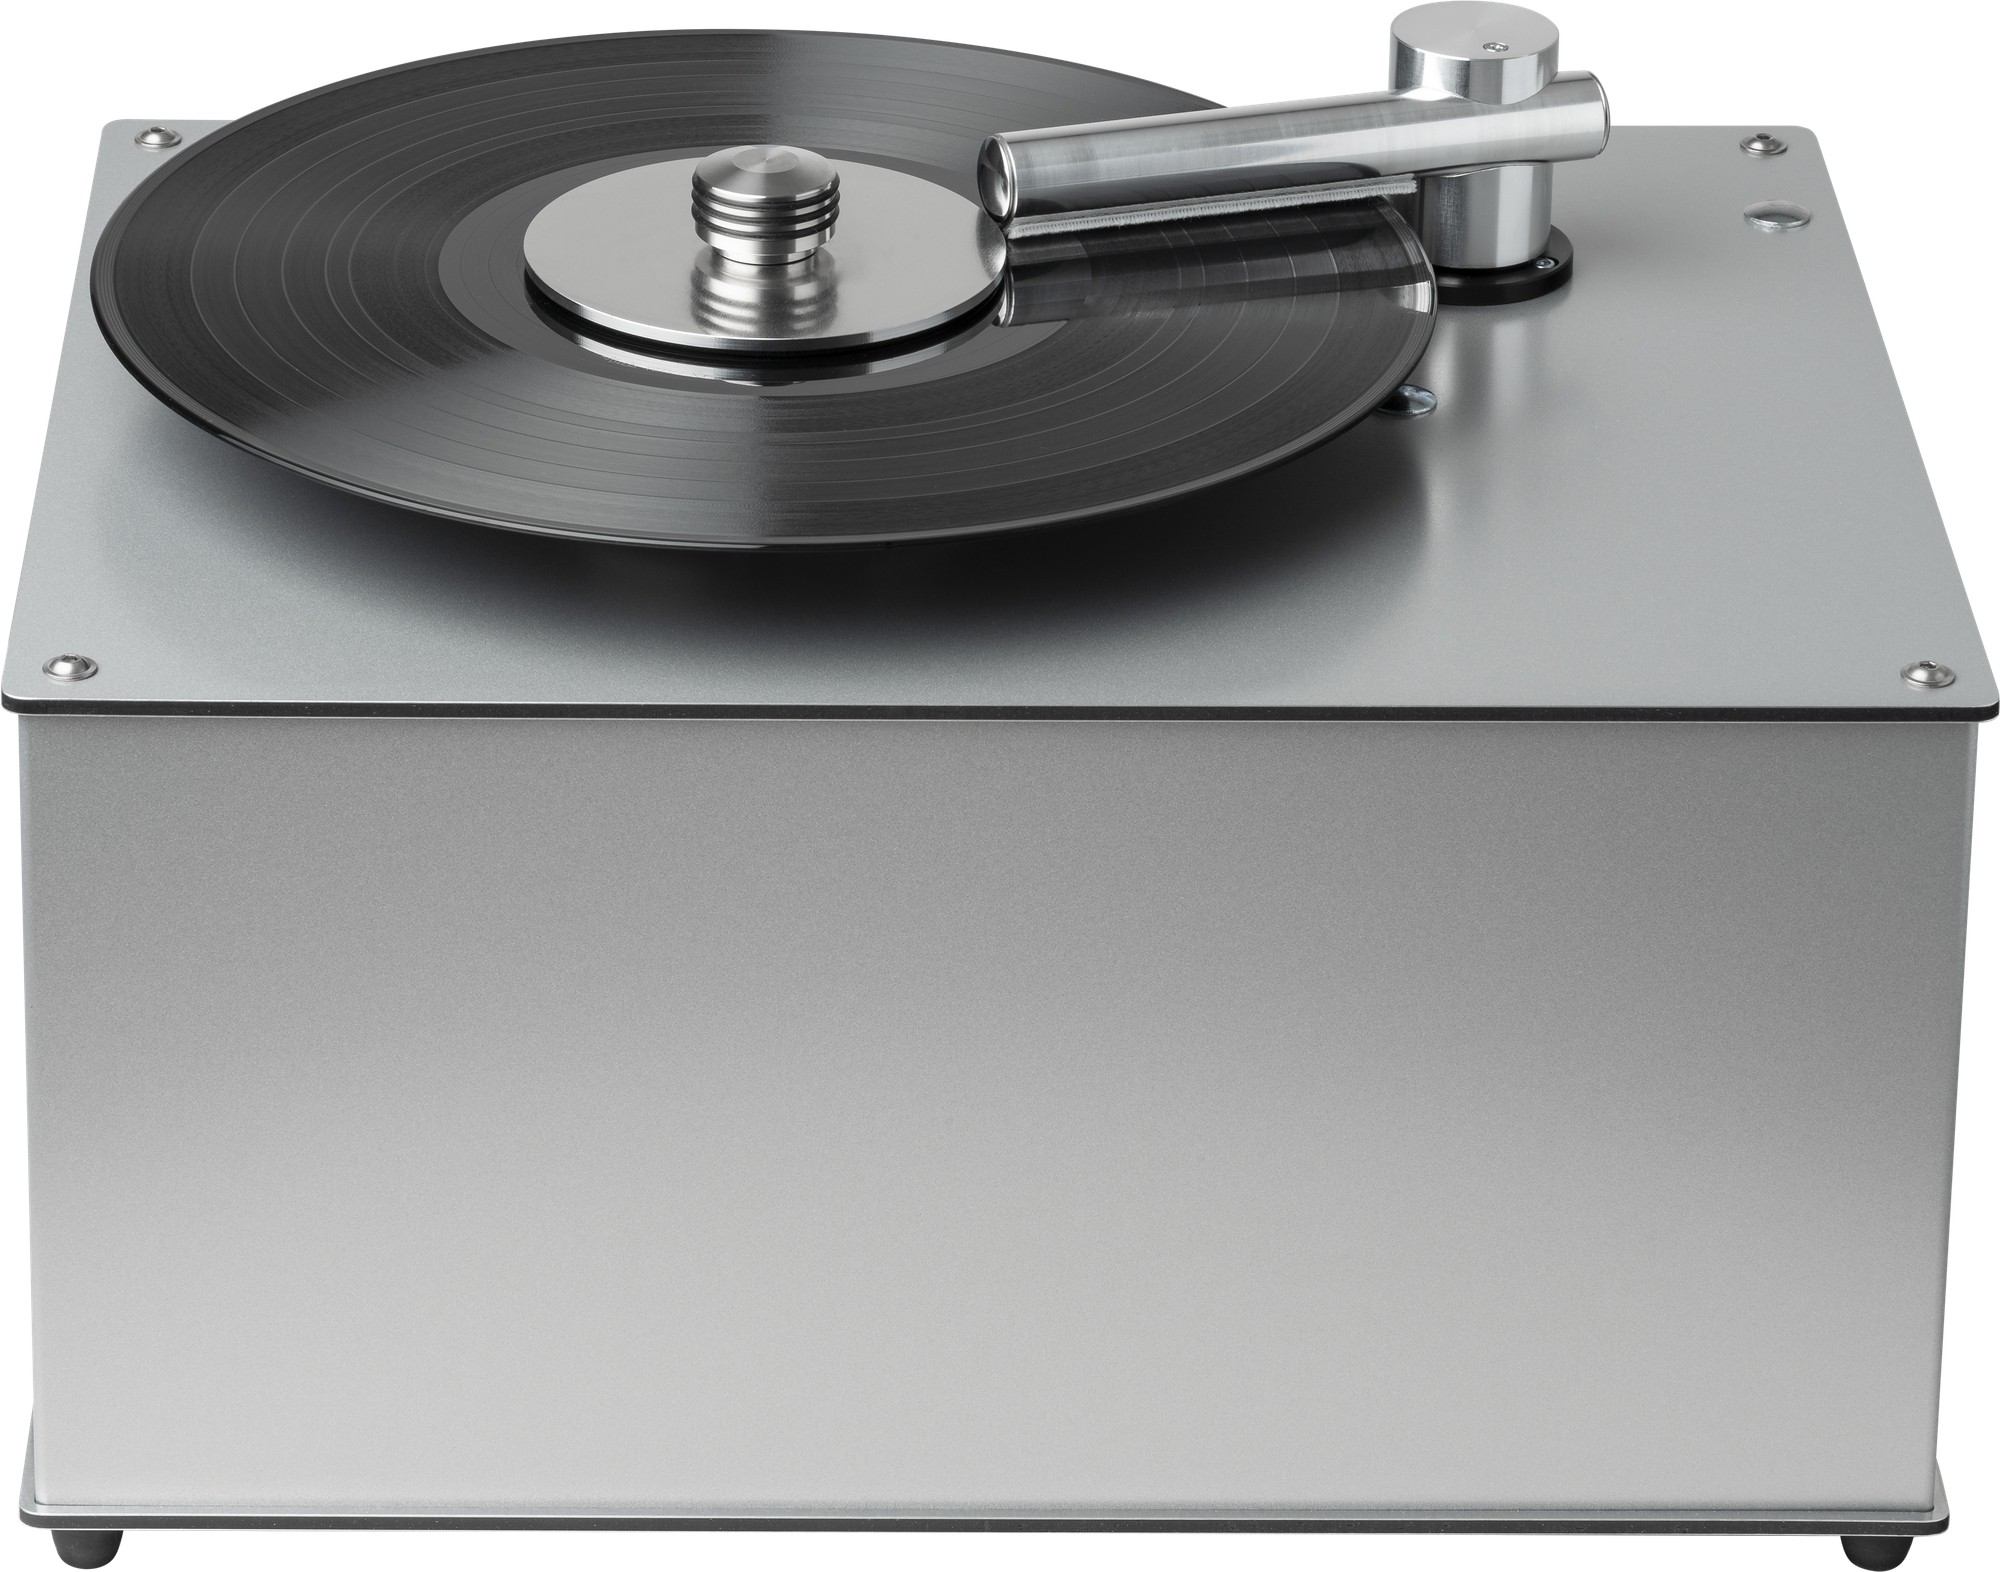 Pro-Ject VC-S2 Premium Record Cleaning Machine